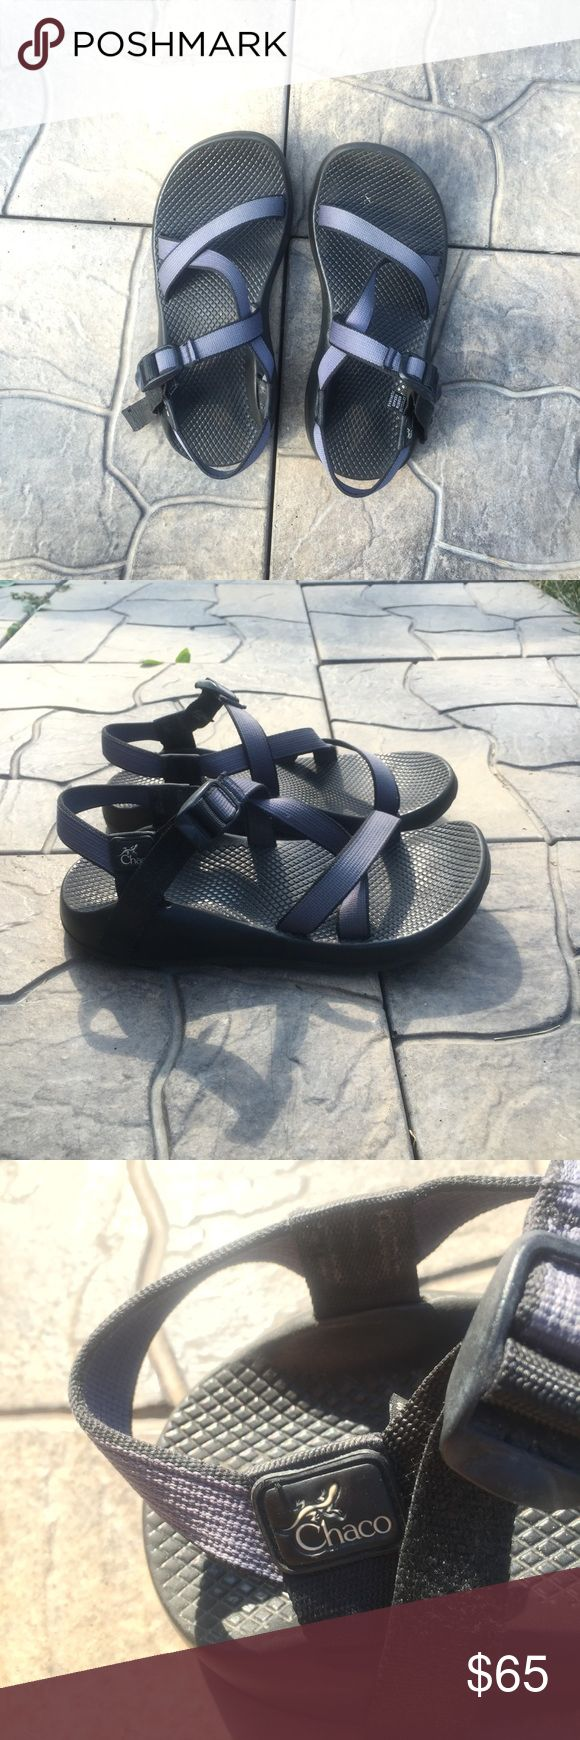 Grey and Black Chacos Amazing condition! Perfect for walking long distances or hiking. I got a new pair so I no longer need these. Feel free to make an offer! Chacos Shoes Sandals